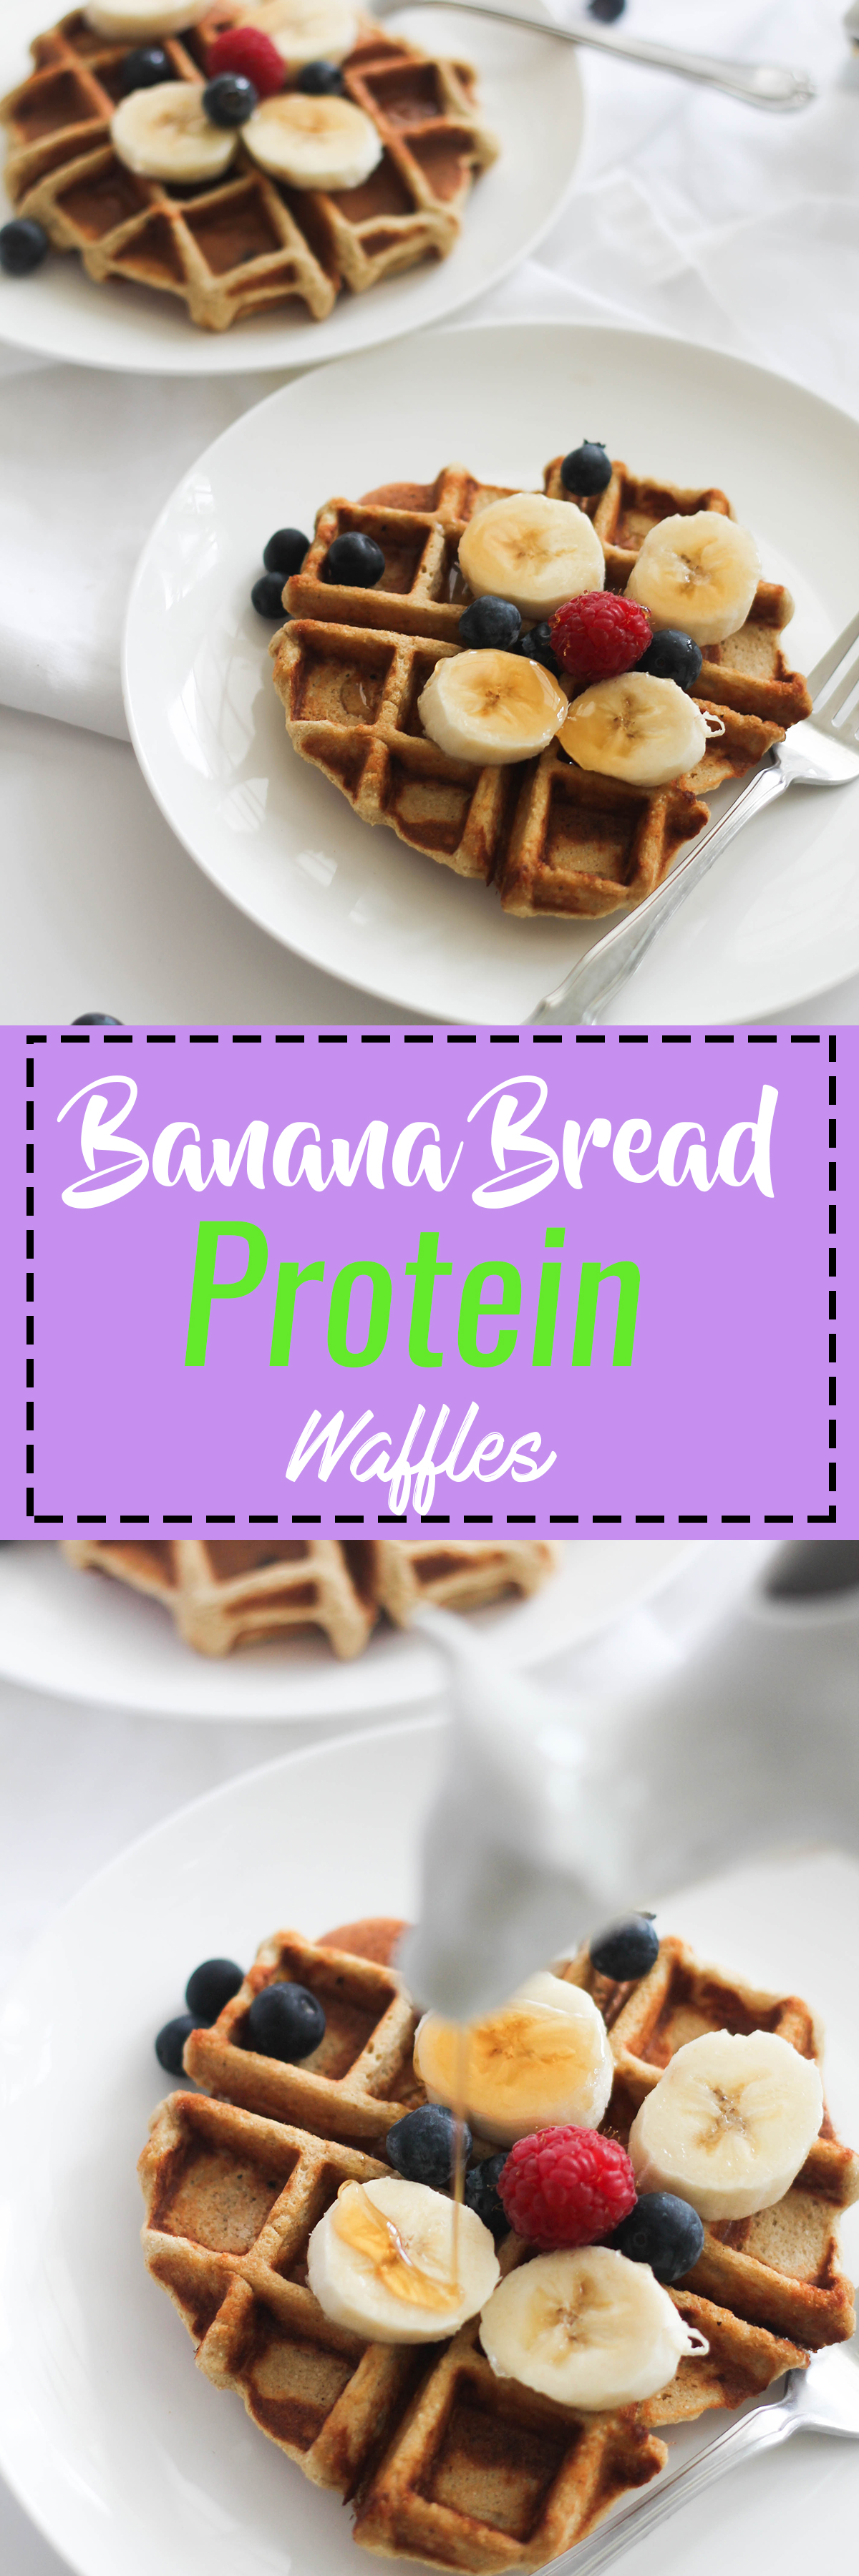 Banana Bread Protein Waffles that are vegan, healthy, gluten free, and protein packed! They're filled with flavor, natural sweetness, and are the perfect weekend breakfast.